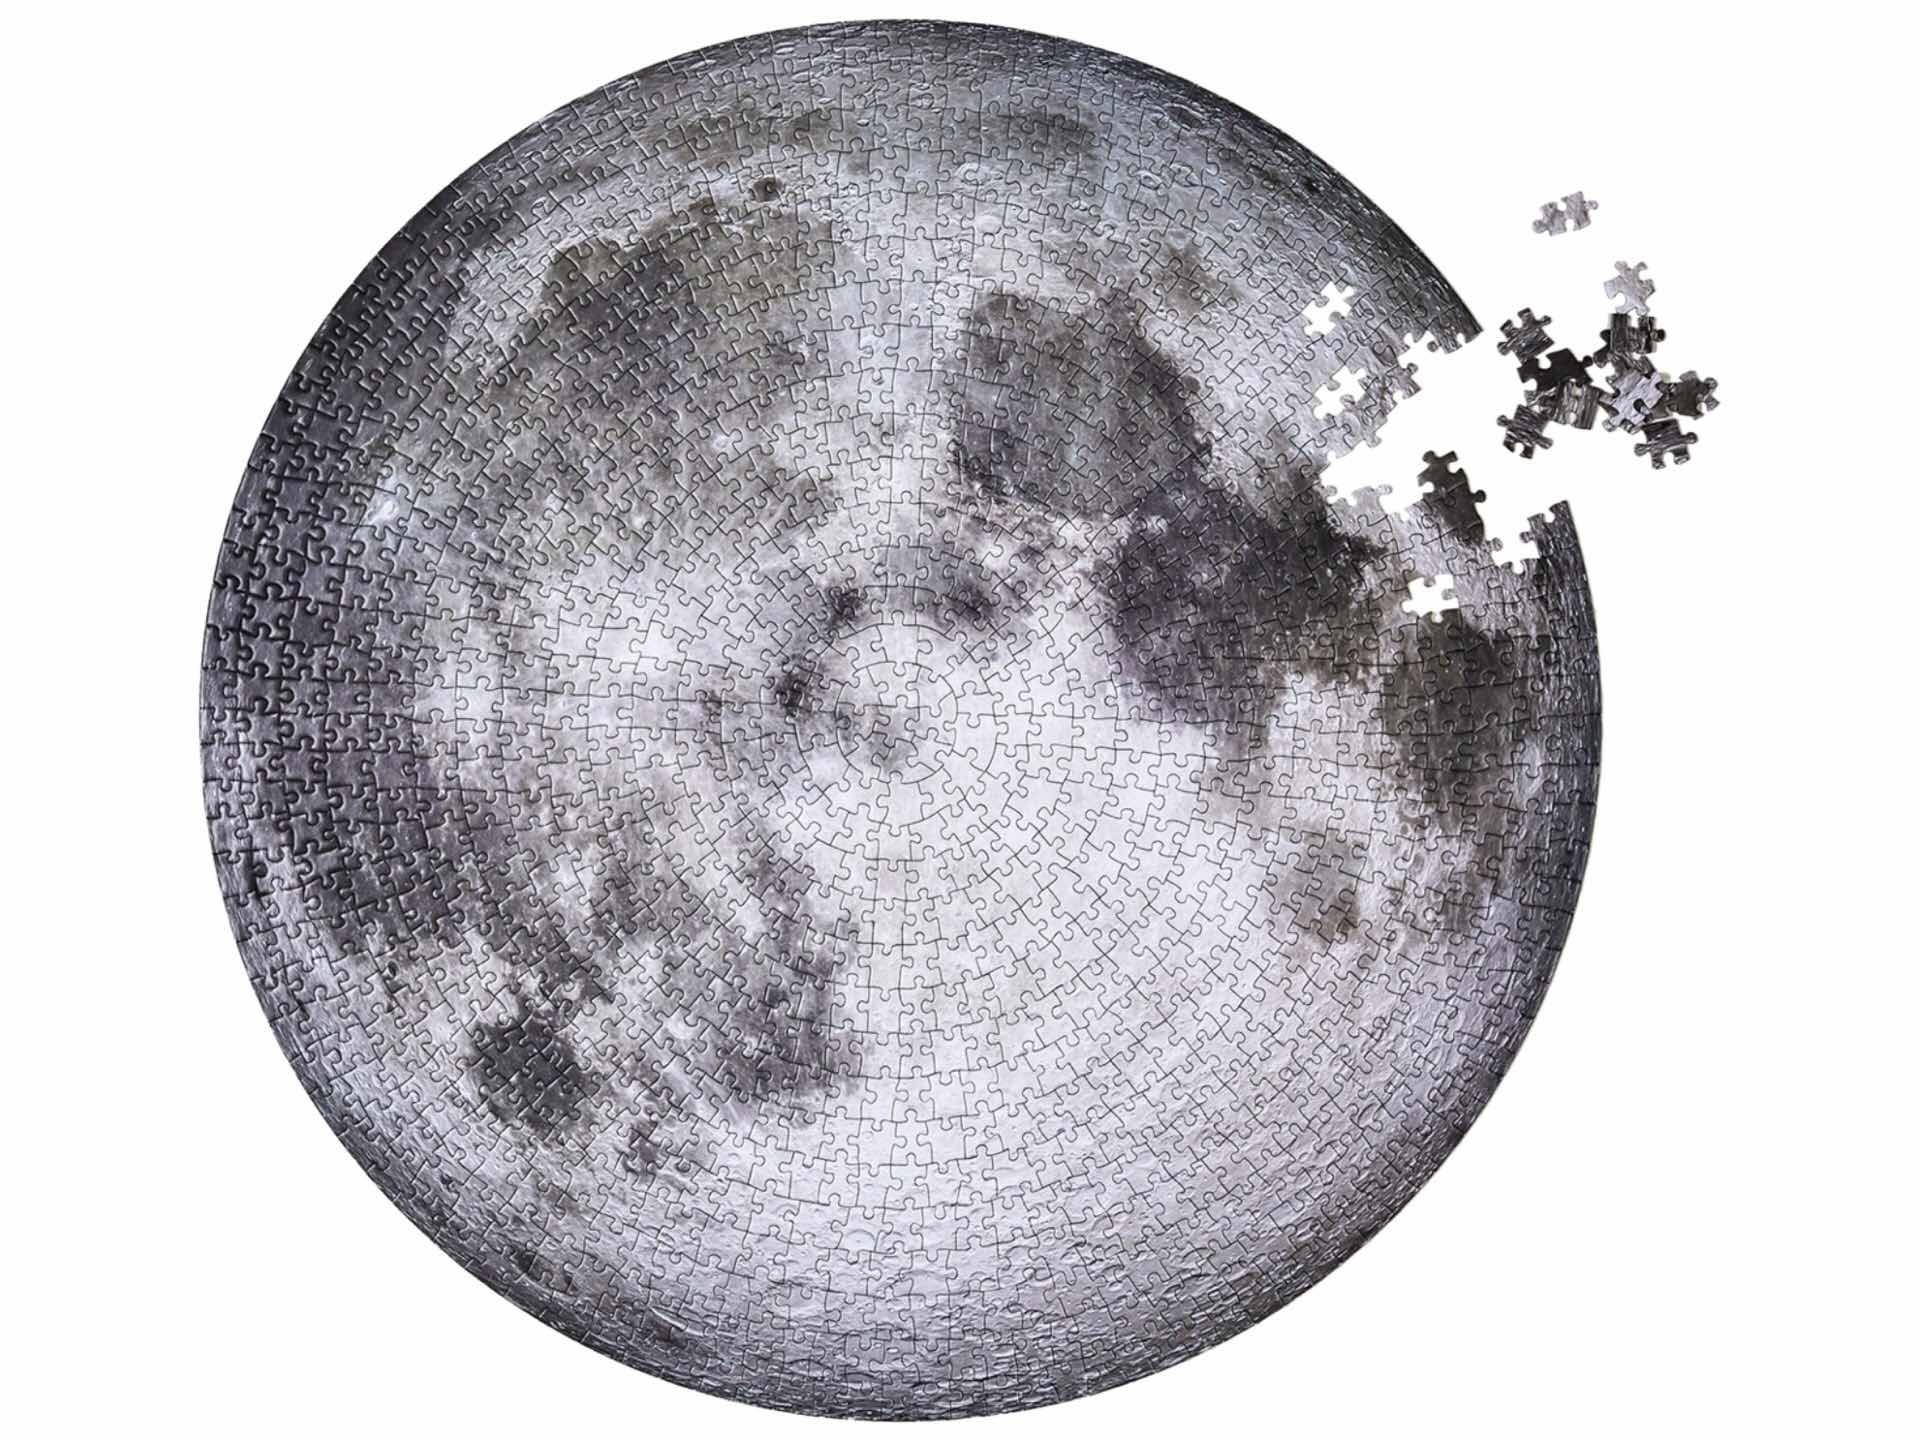 The Moon jigsaw by Four Point Puzzles. ($25)